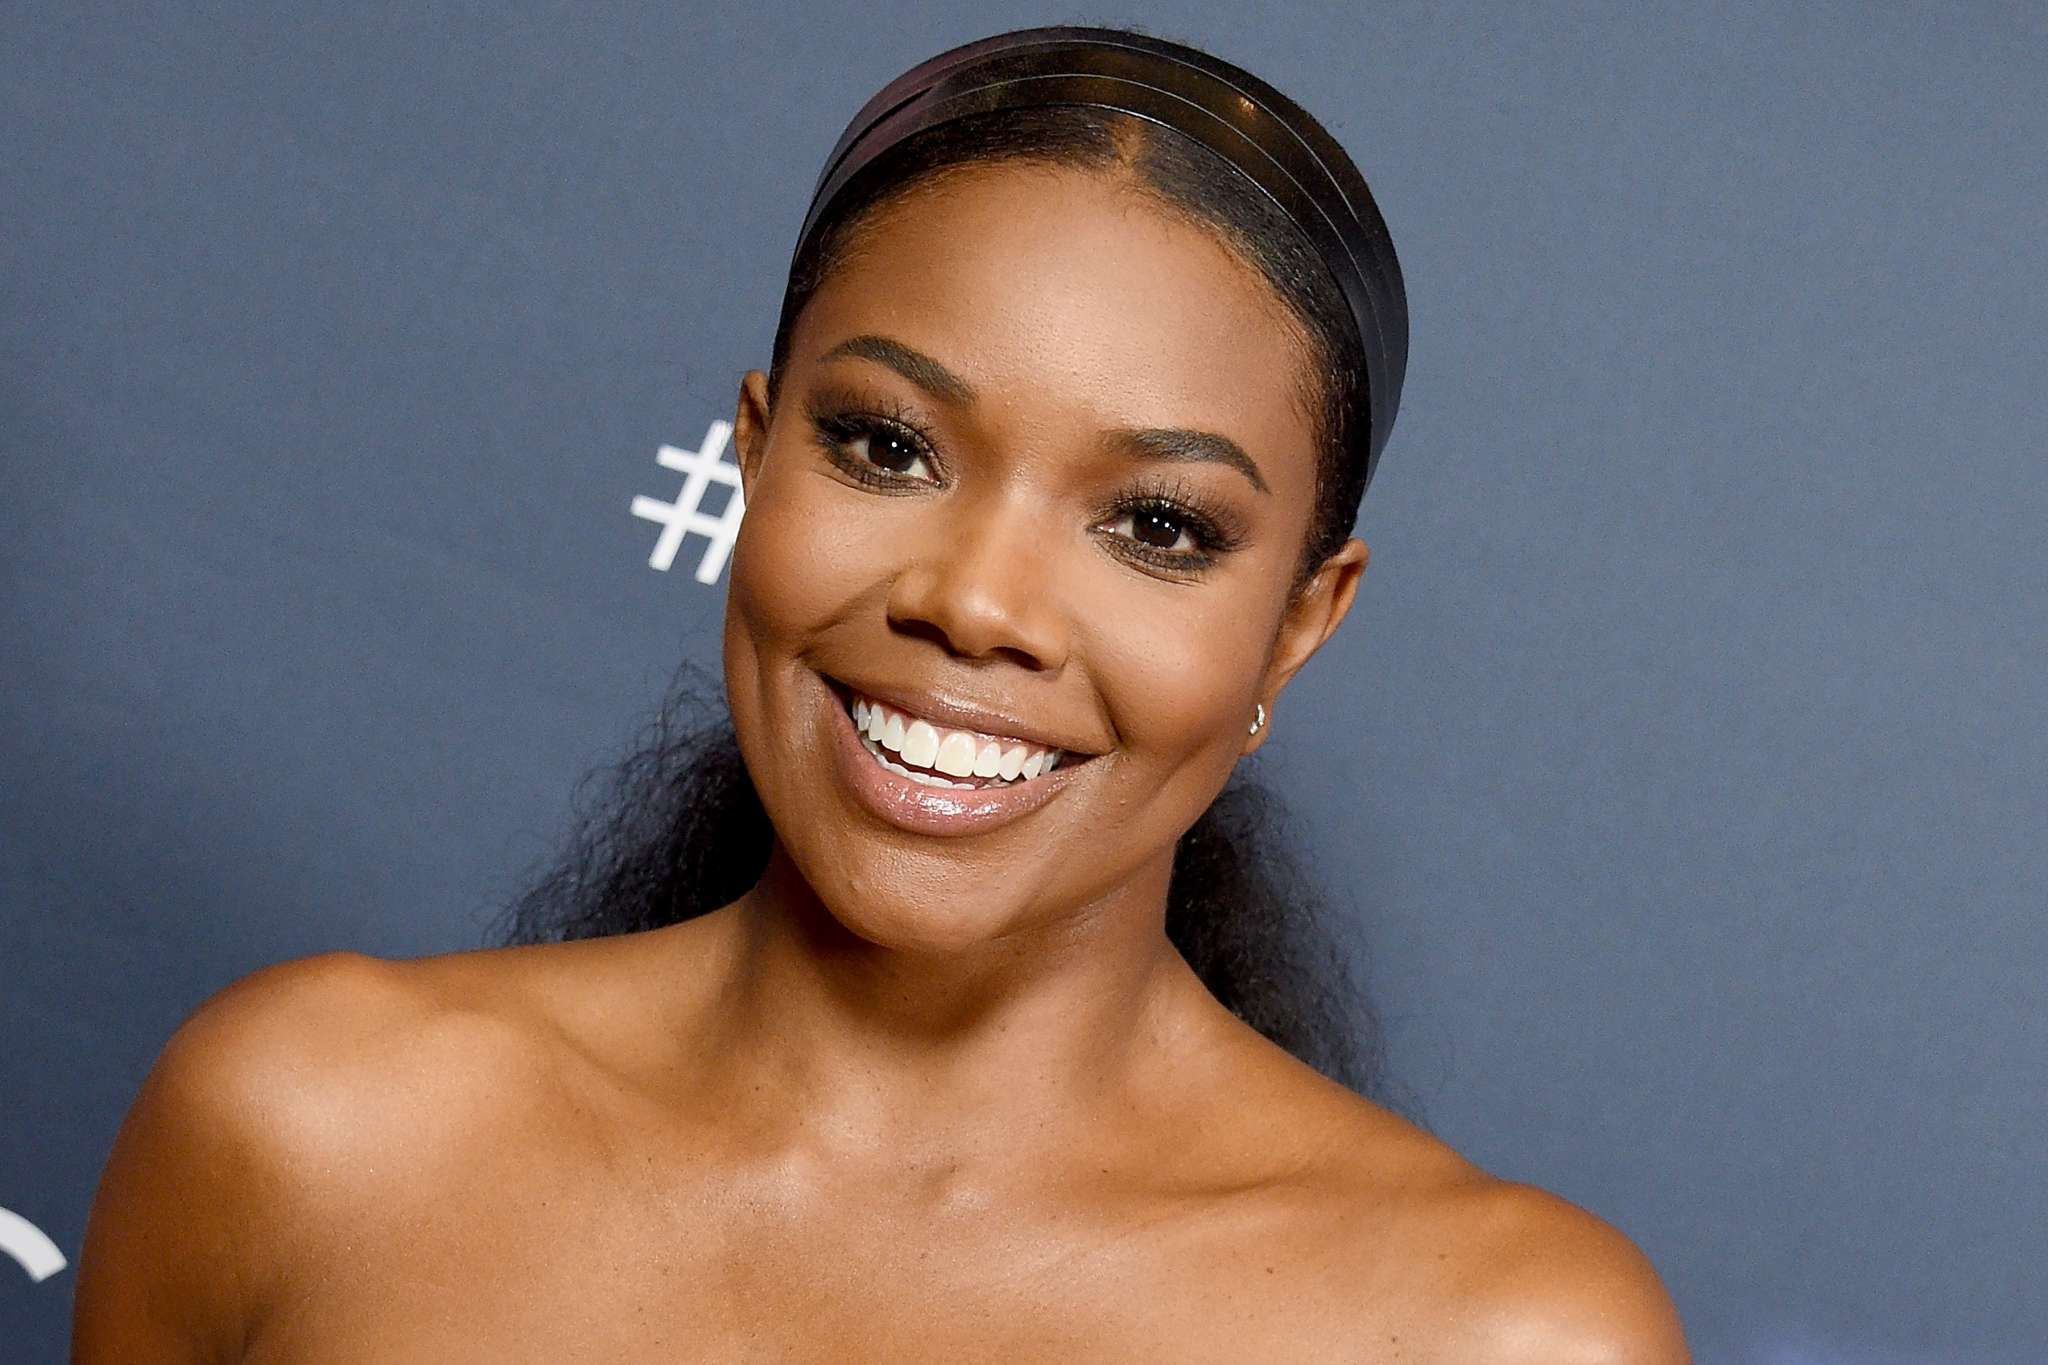 gabrielle-union-looks-like-a-doll-in-this-pink-outfit-check-it-out-below